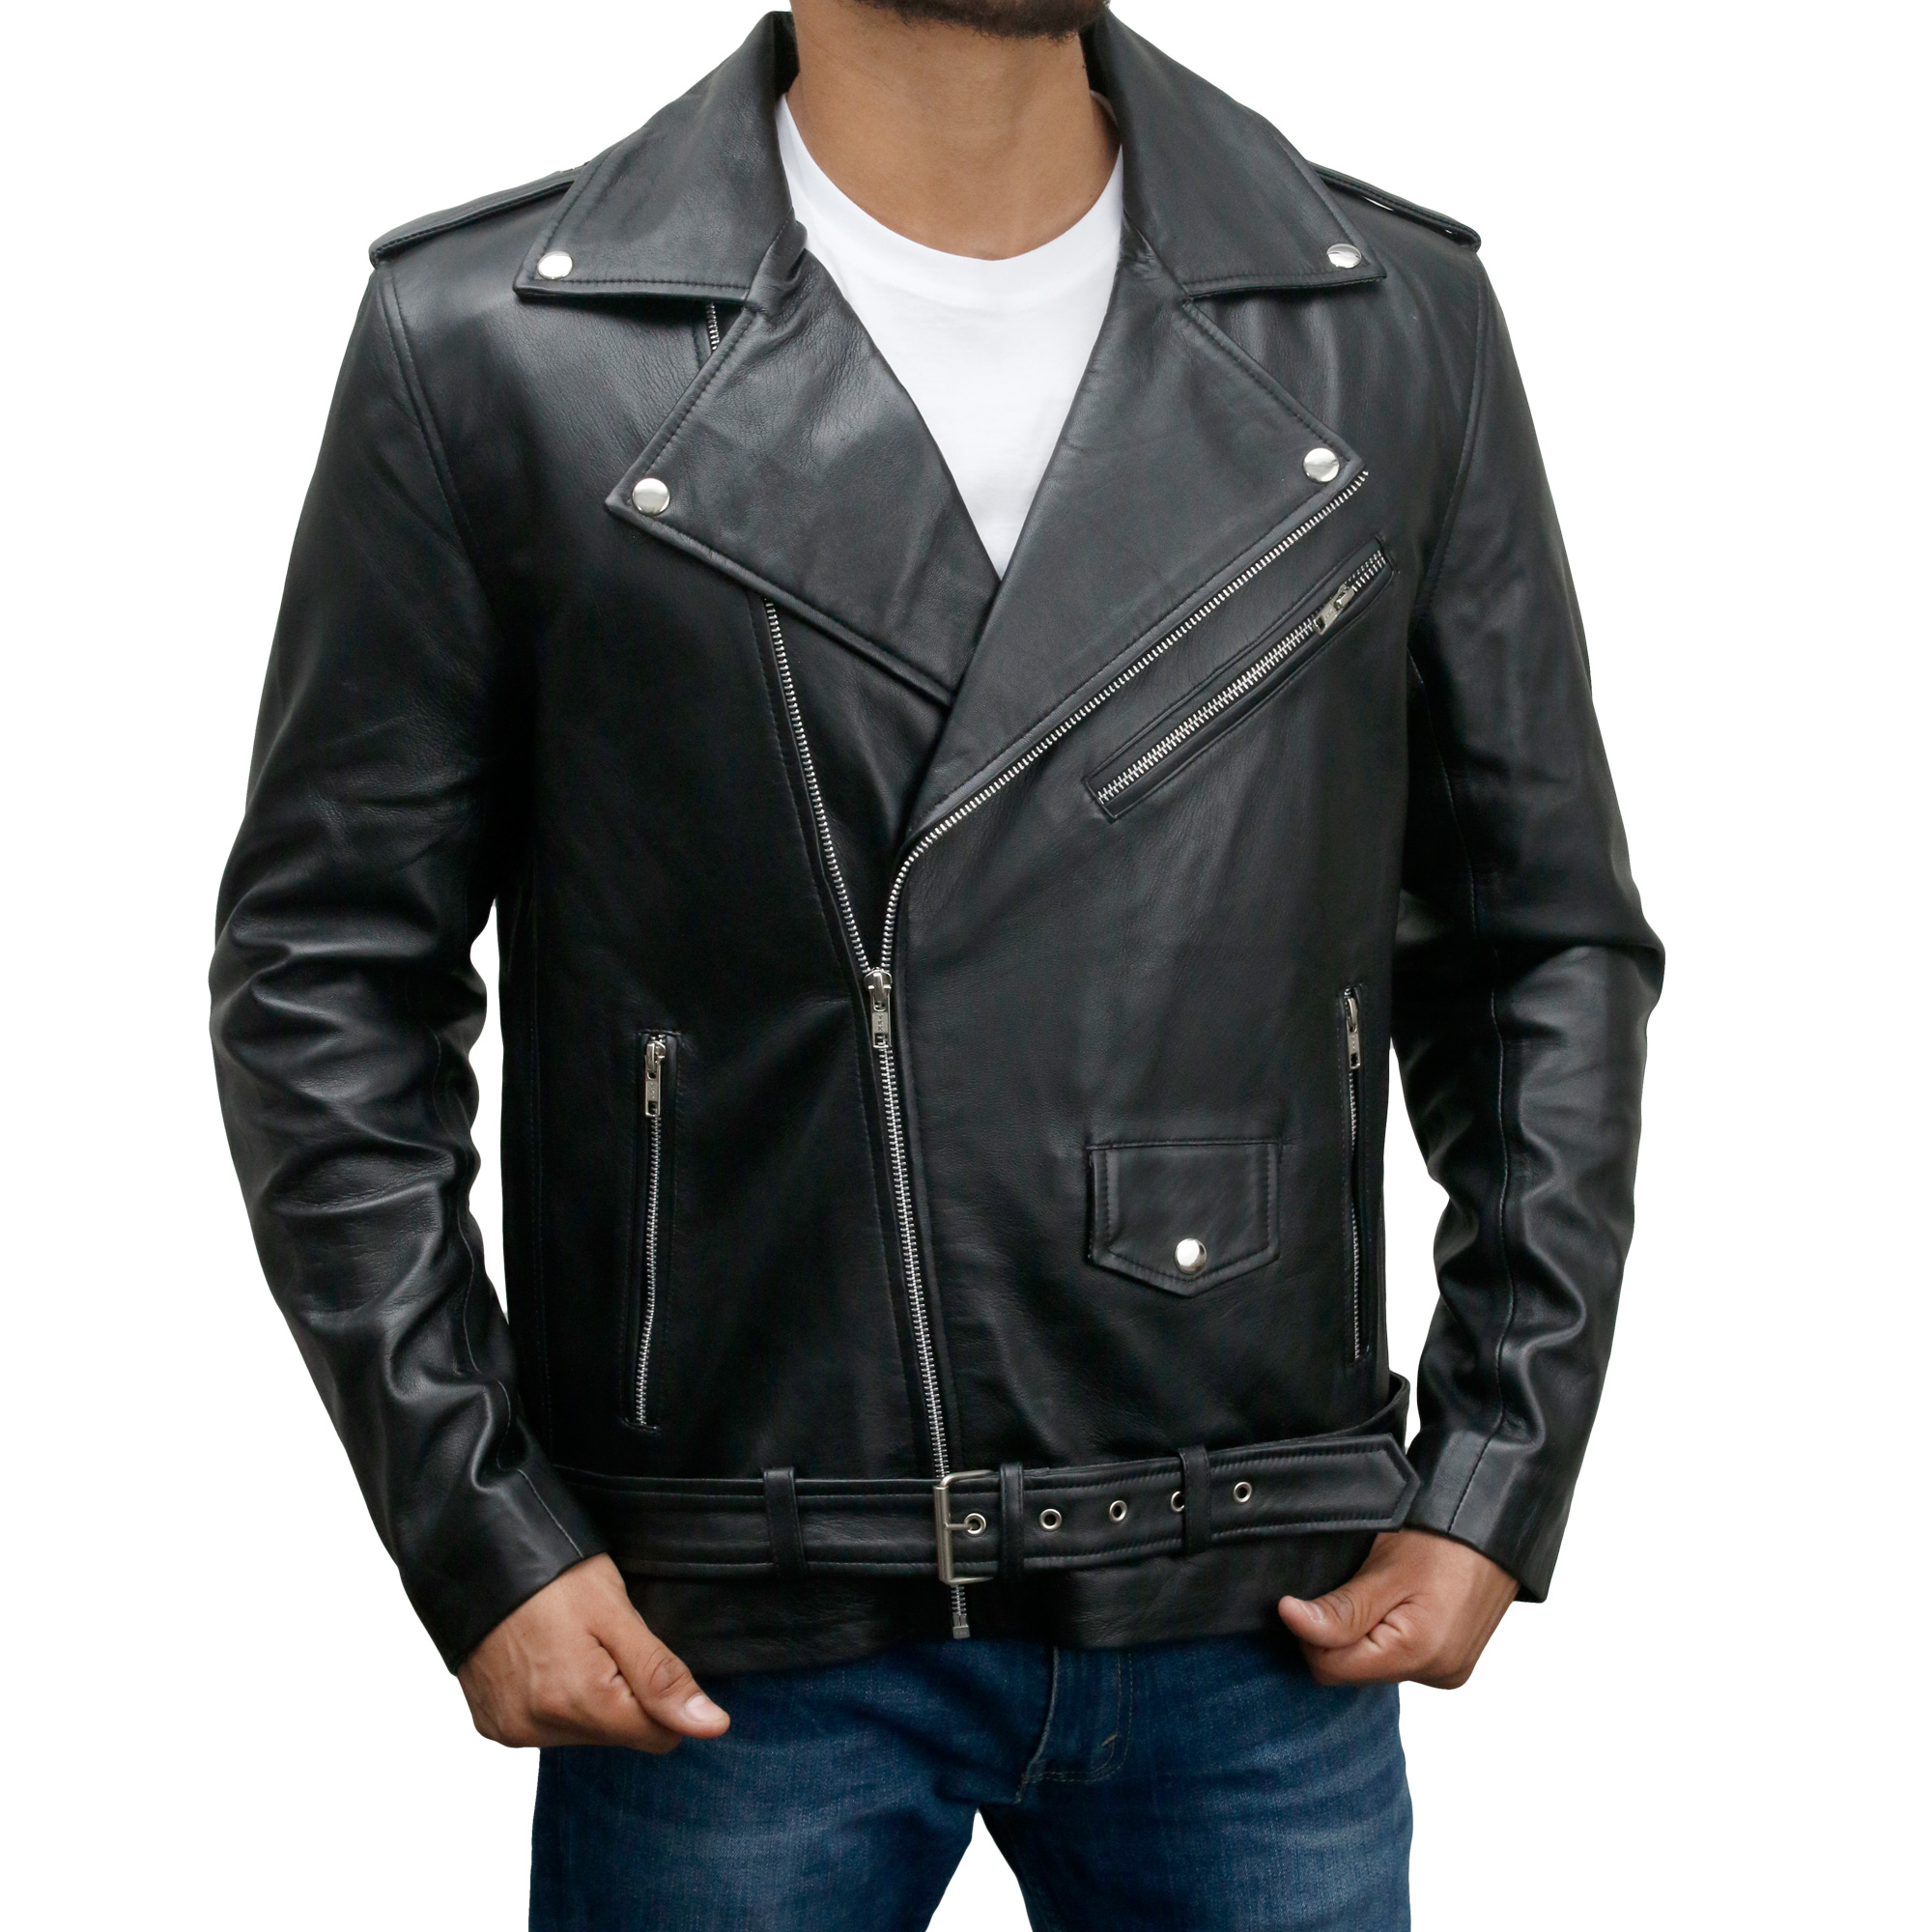 Brando Motorcycle Biker Leather Jacket